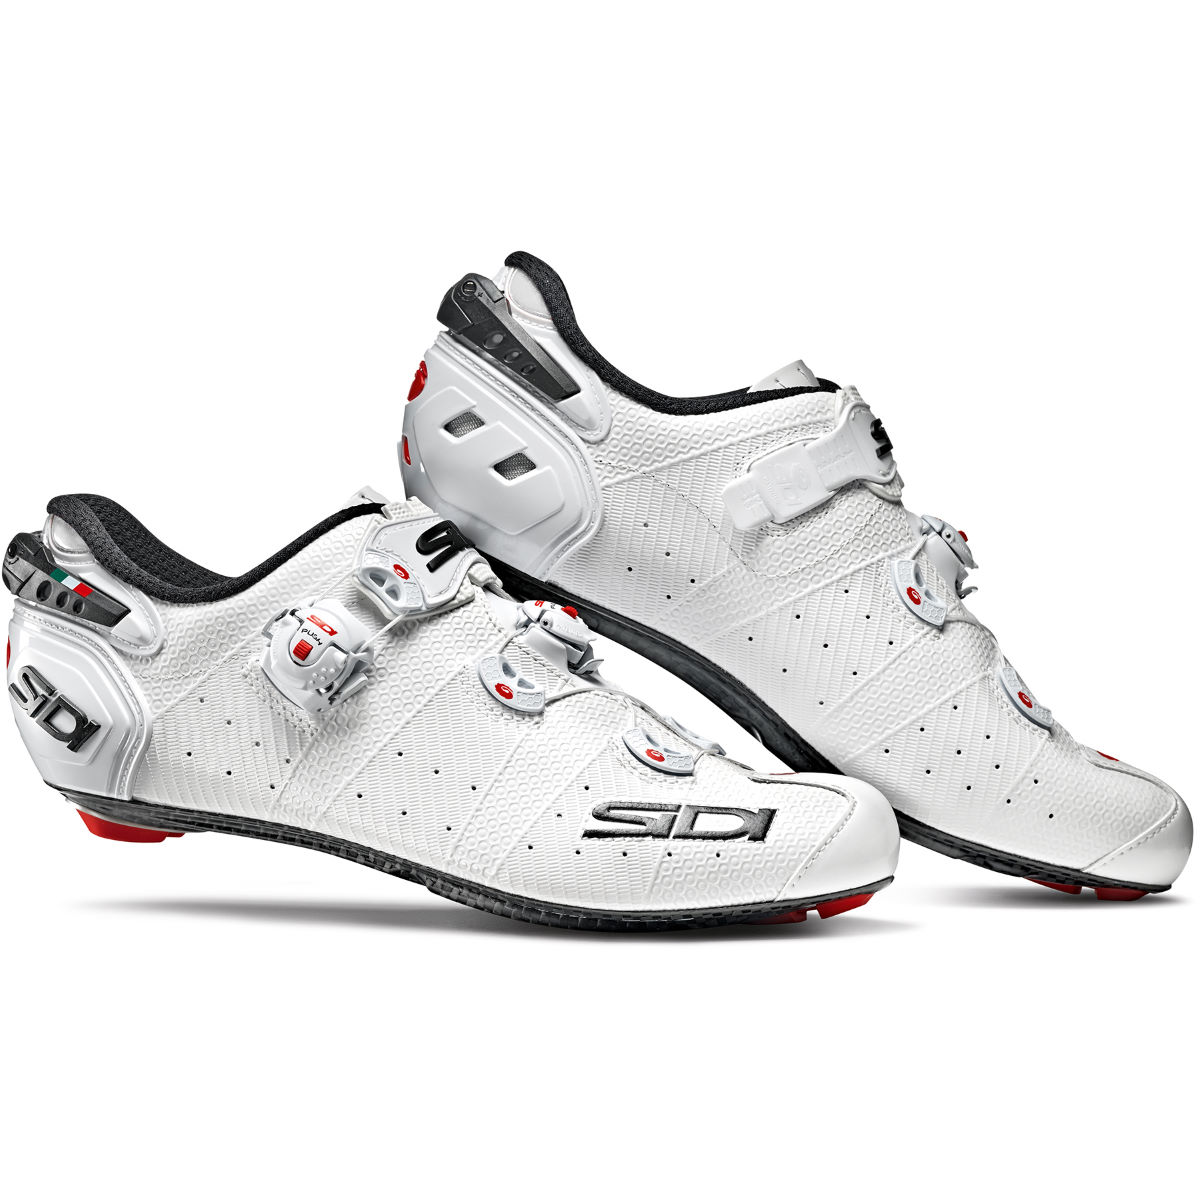 Sidi Women's Wire 2 Carbon Road Shoes